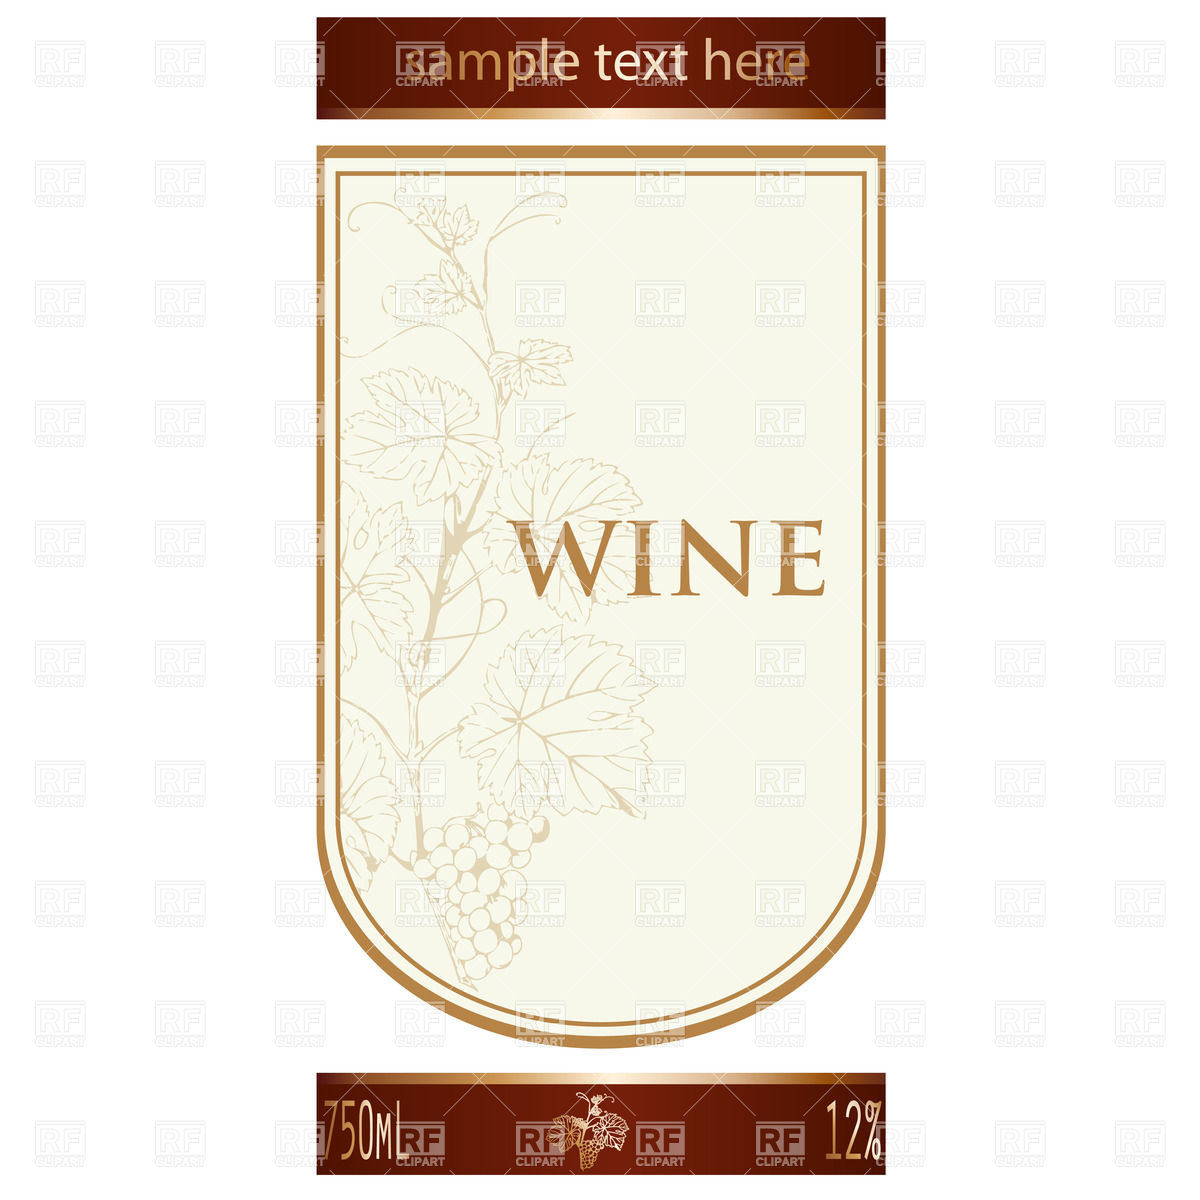 6 Free Printable Wine Labels You Can Customize | LoveToKnow